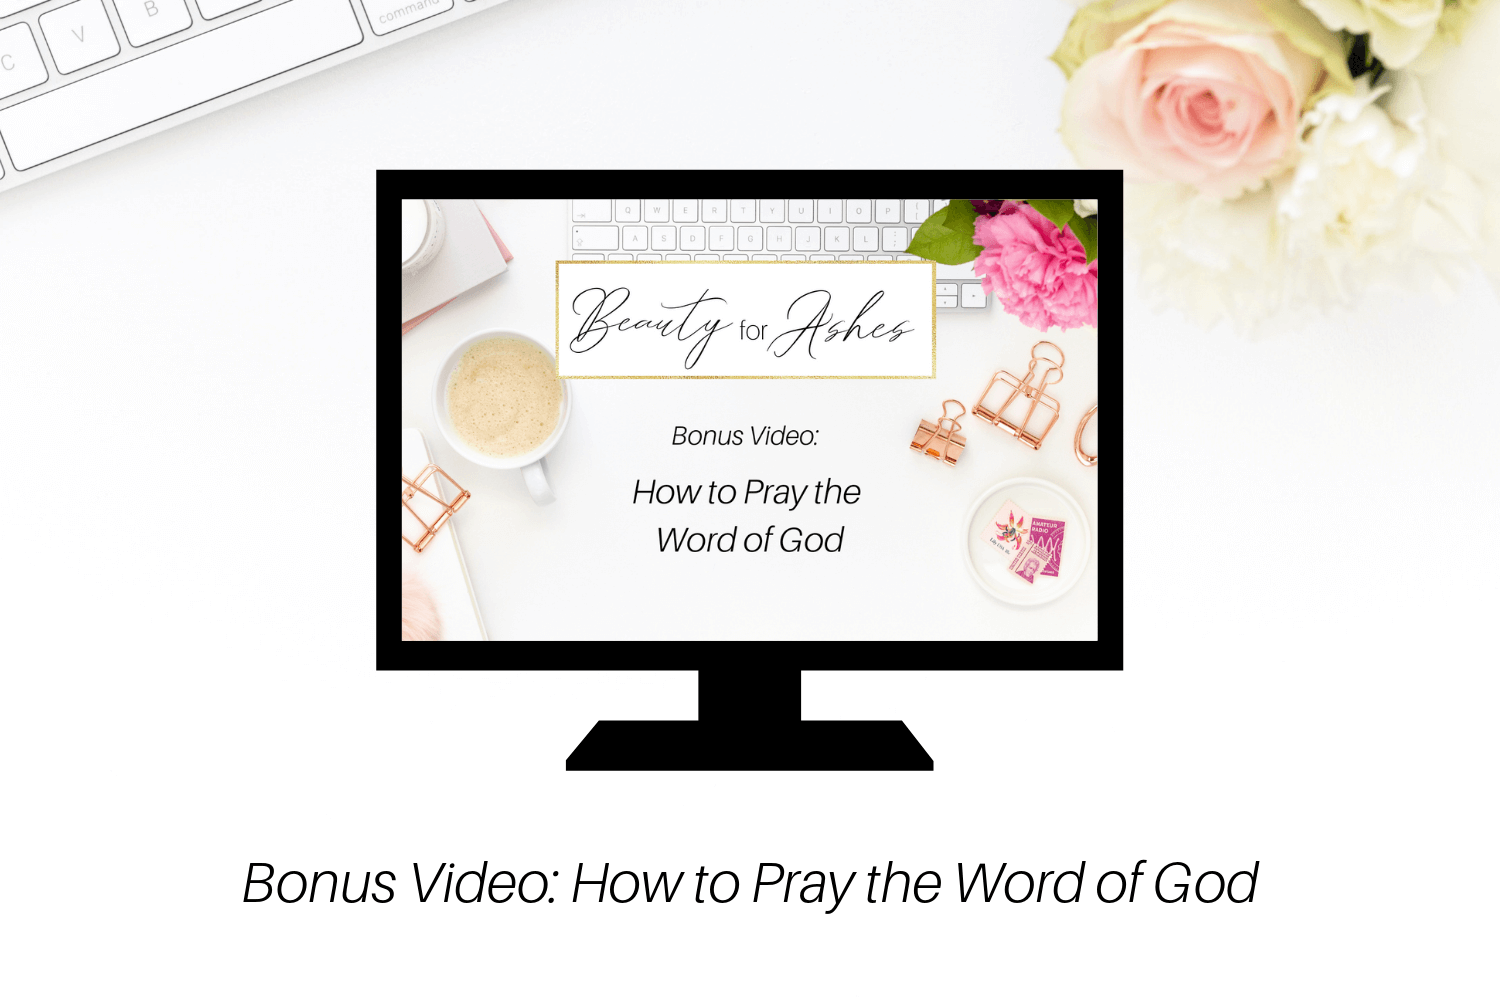 Bonus Video: How to Pray the Word of God